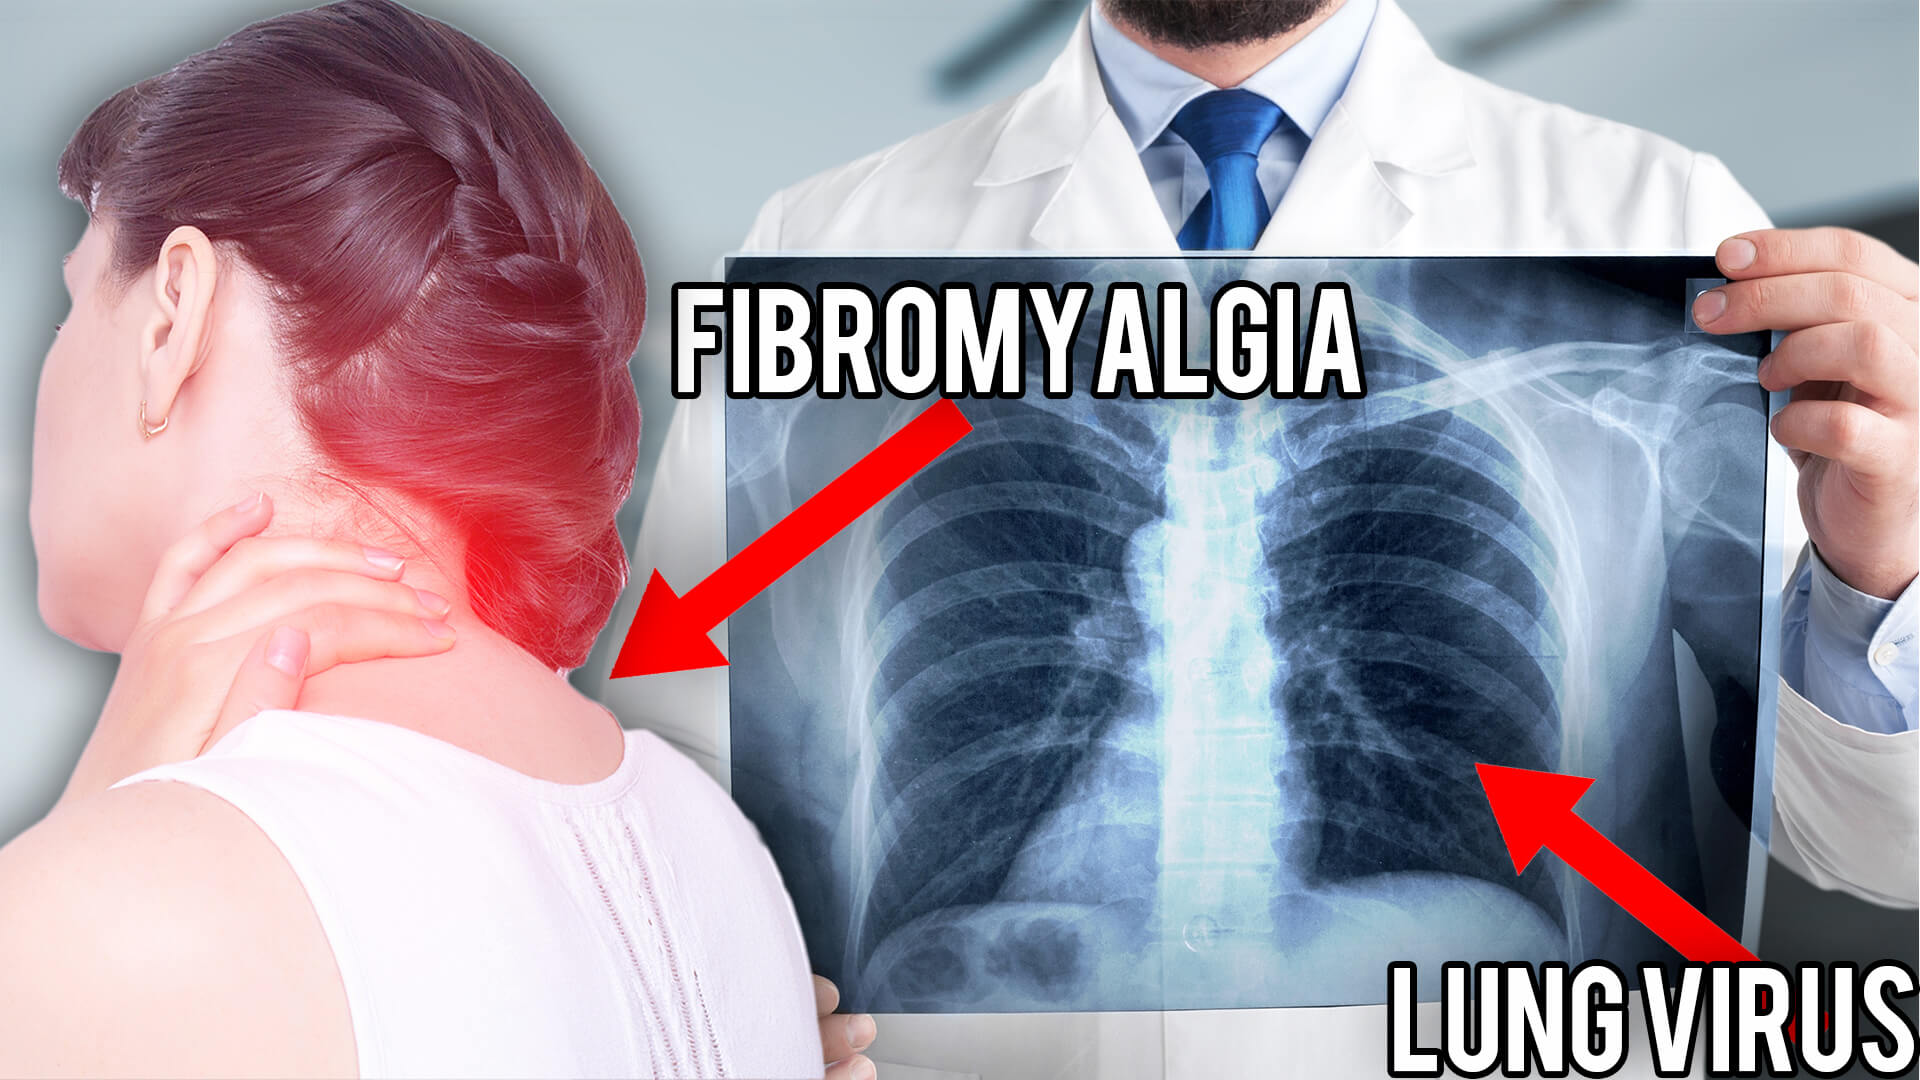 Live Q&A with Dr. Purser | Fibromyalgia and How to Combat Viral Lung Infections